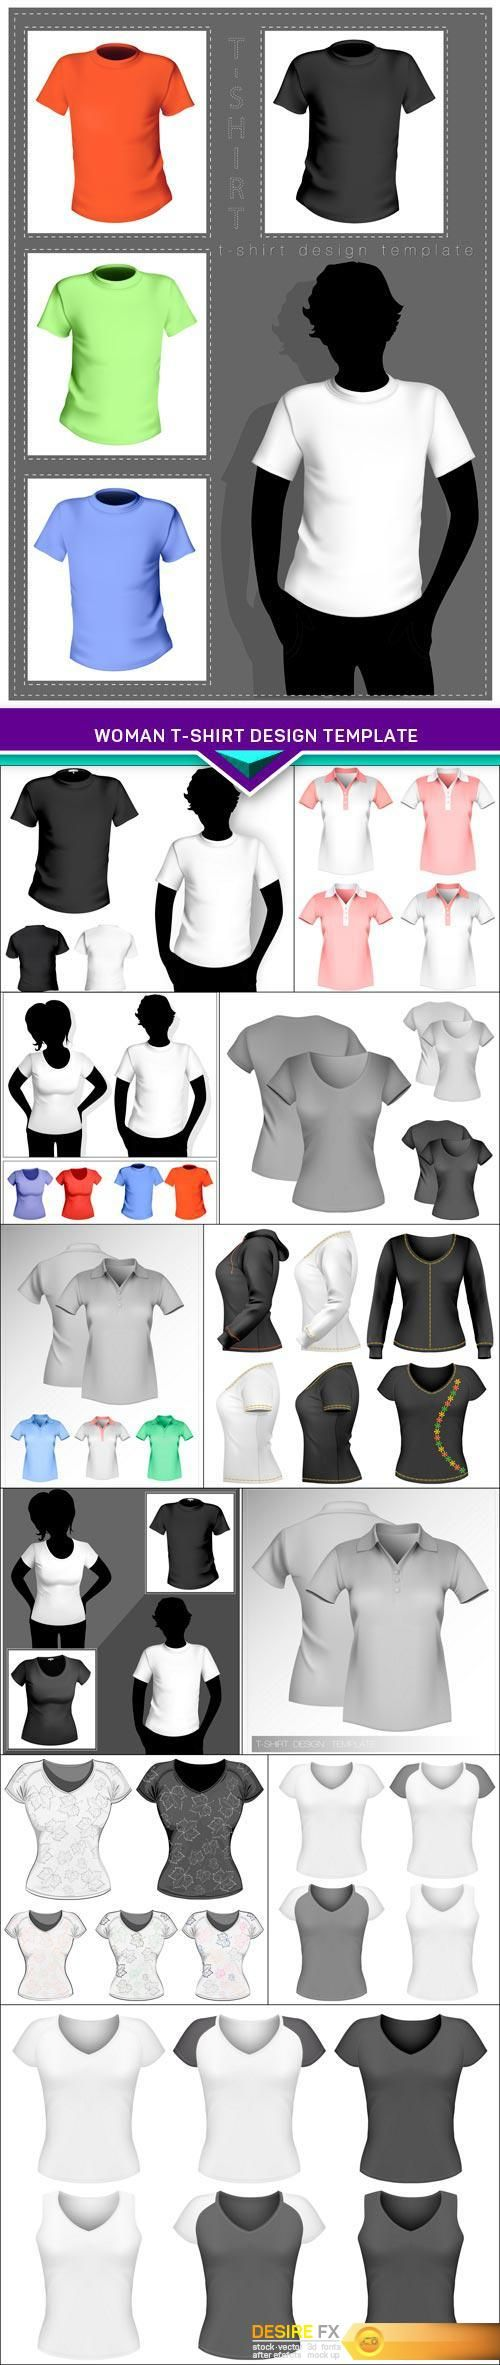 Design t shirt transfer template - Woman T Shirt Design Template Eps